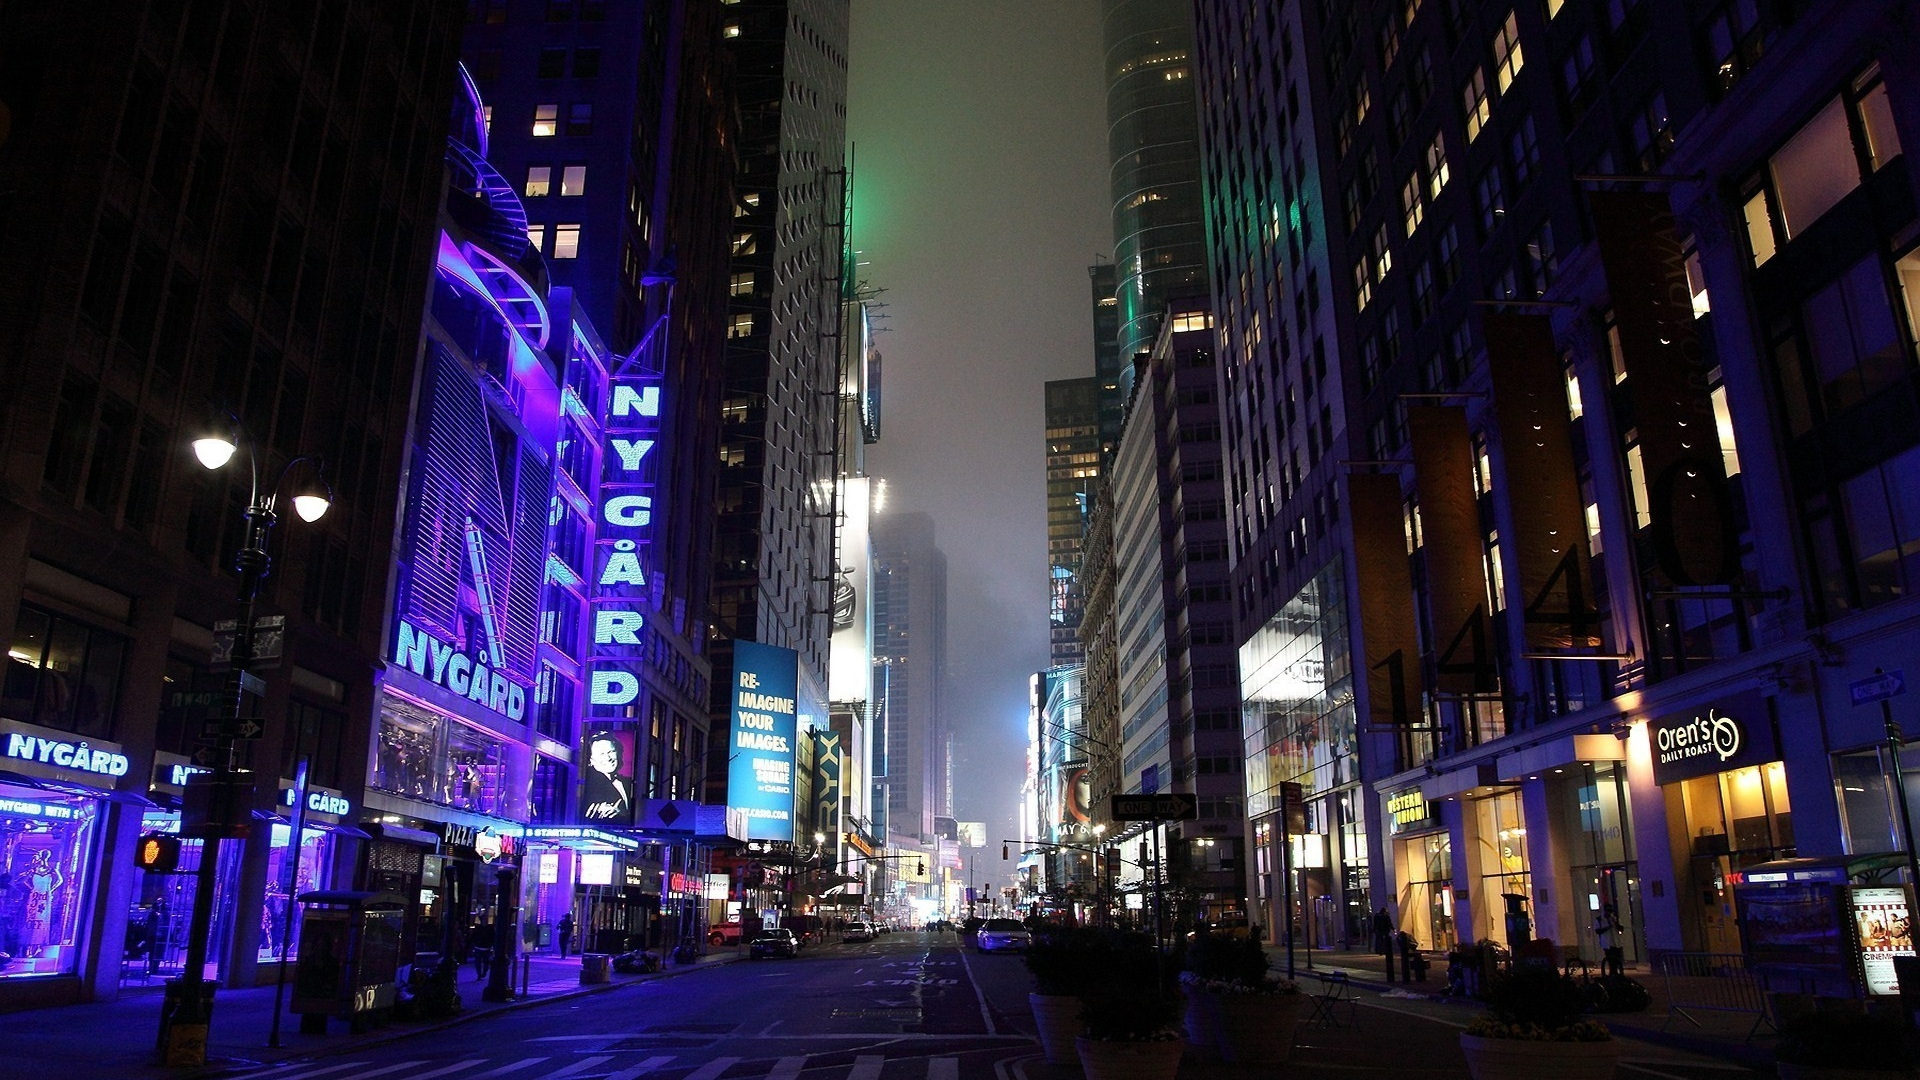 Get The Latest City Night Lights News Pictures And Videos Learn All About From Wallpapers4uorg Your Wallpaper